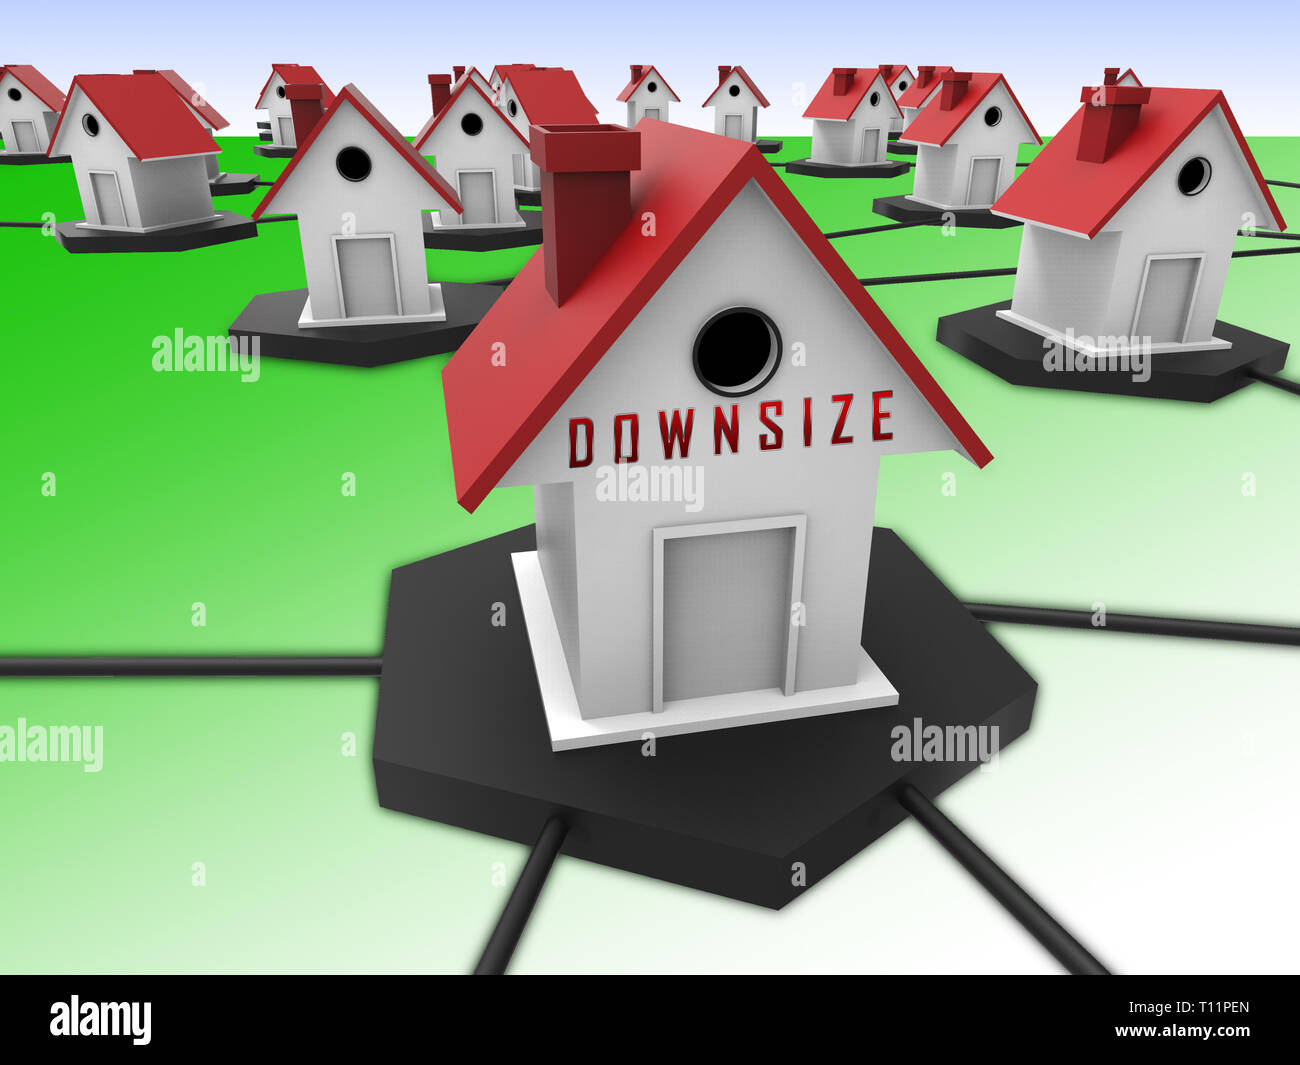 Downsize Home Symbol Means Downsizing Property Due To Retirement Or Budget. Find A Tiny House Or Apartment - 3d Illustration Stock Photo